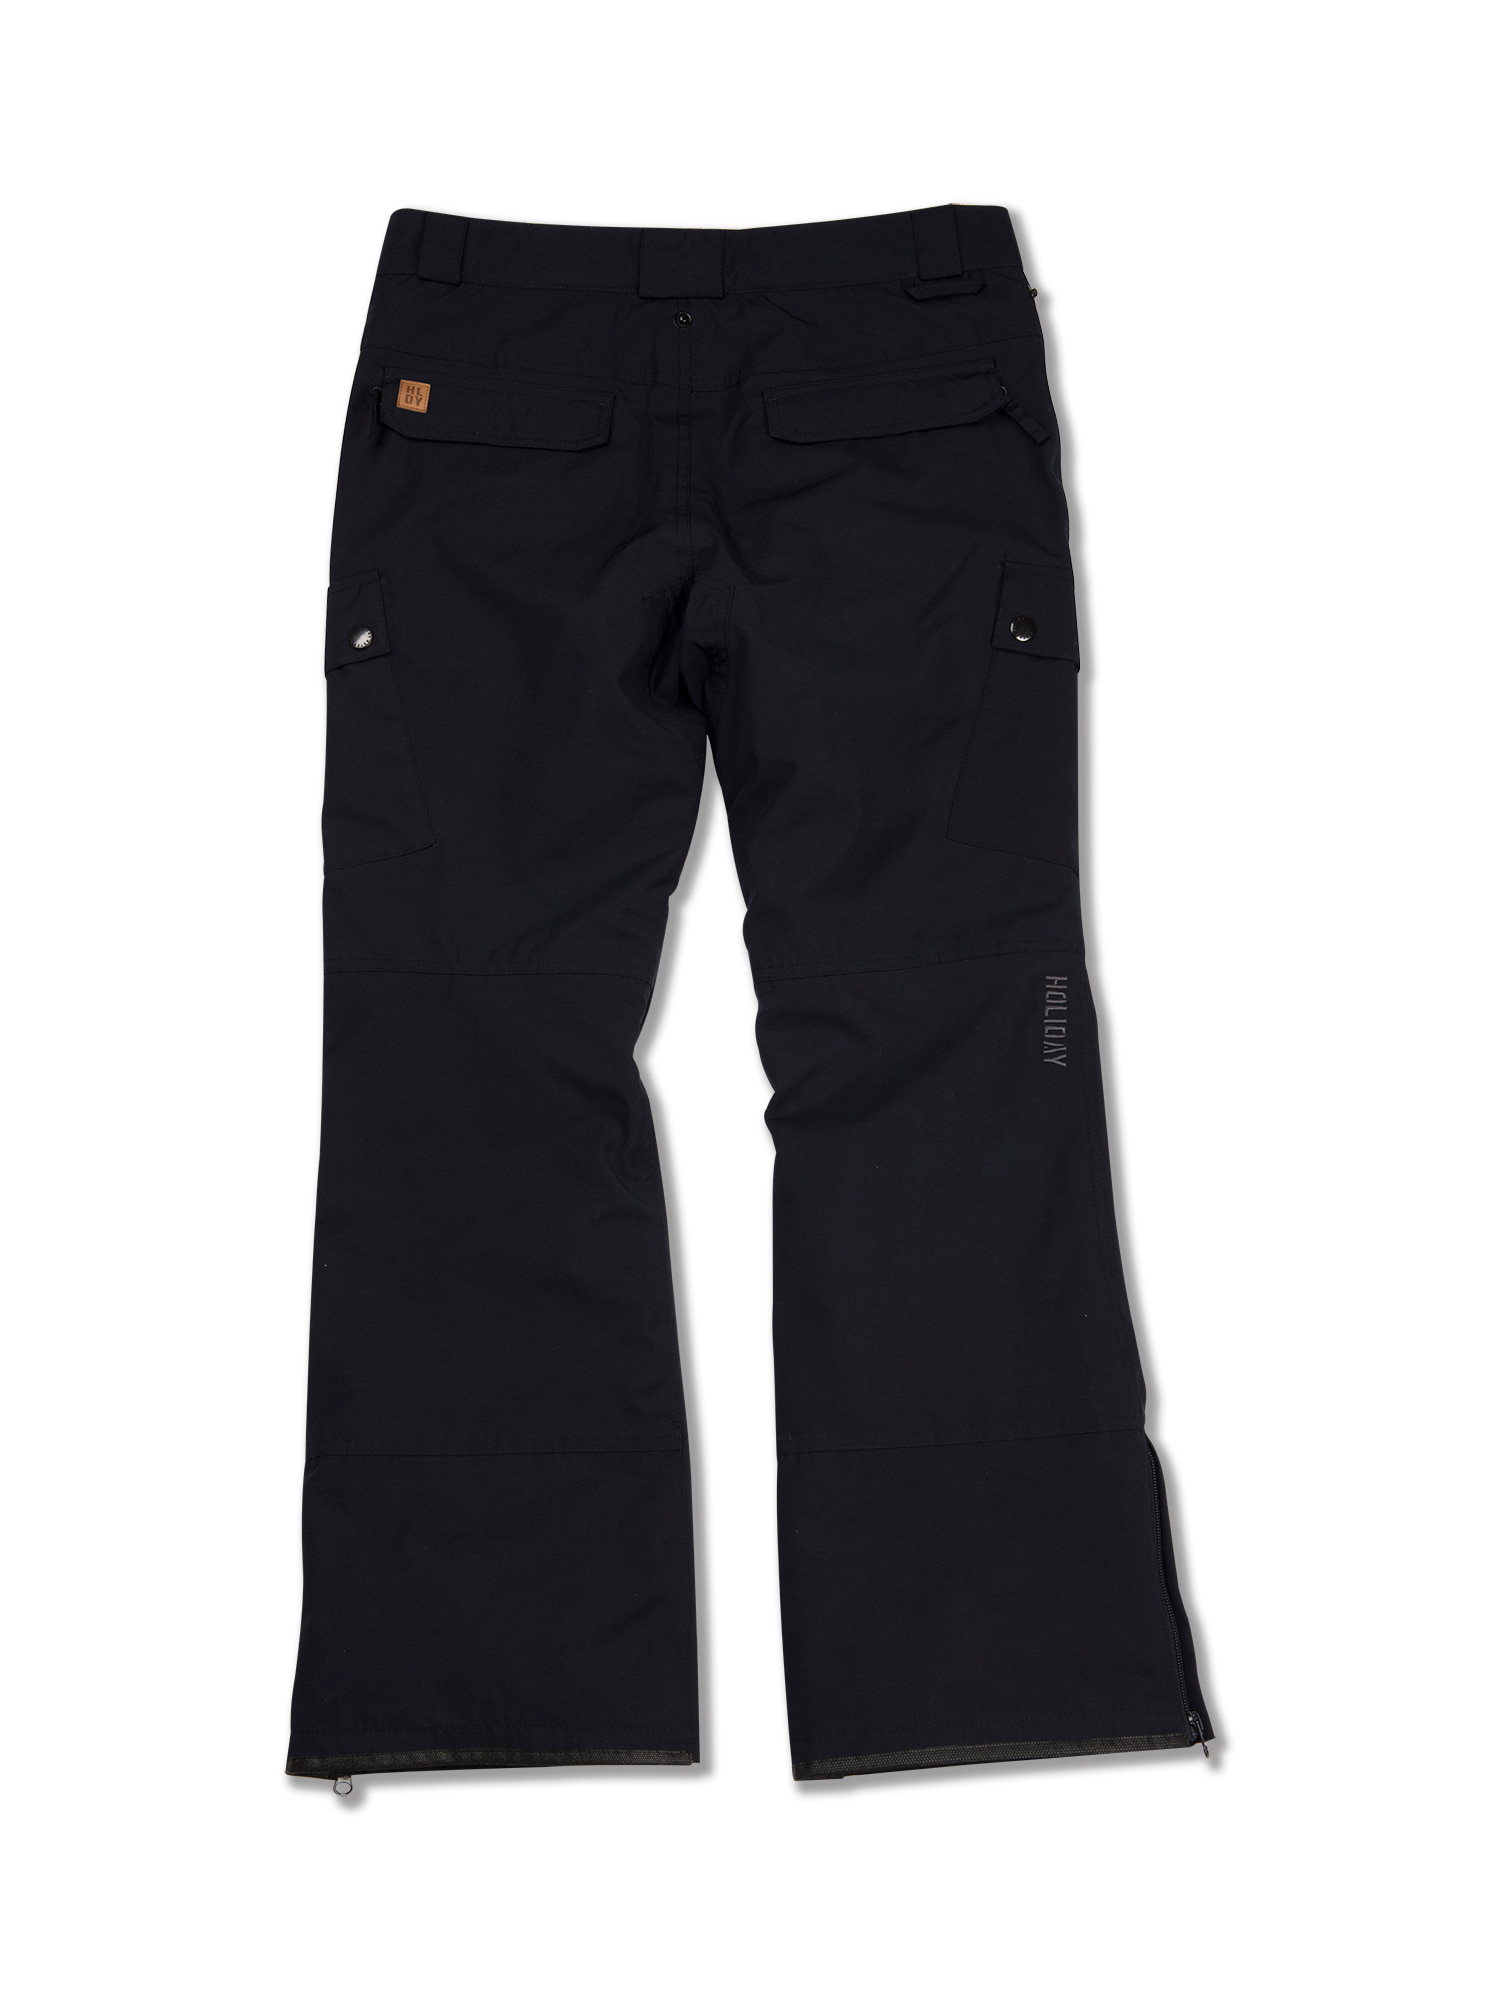 CHATTER pants - navyHOLIDAY OUTERWEAR